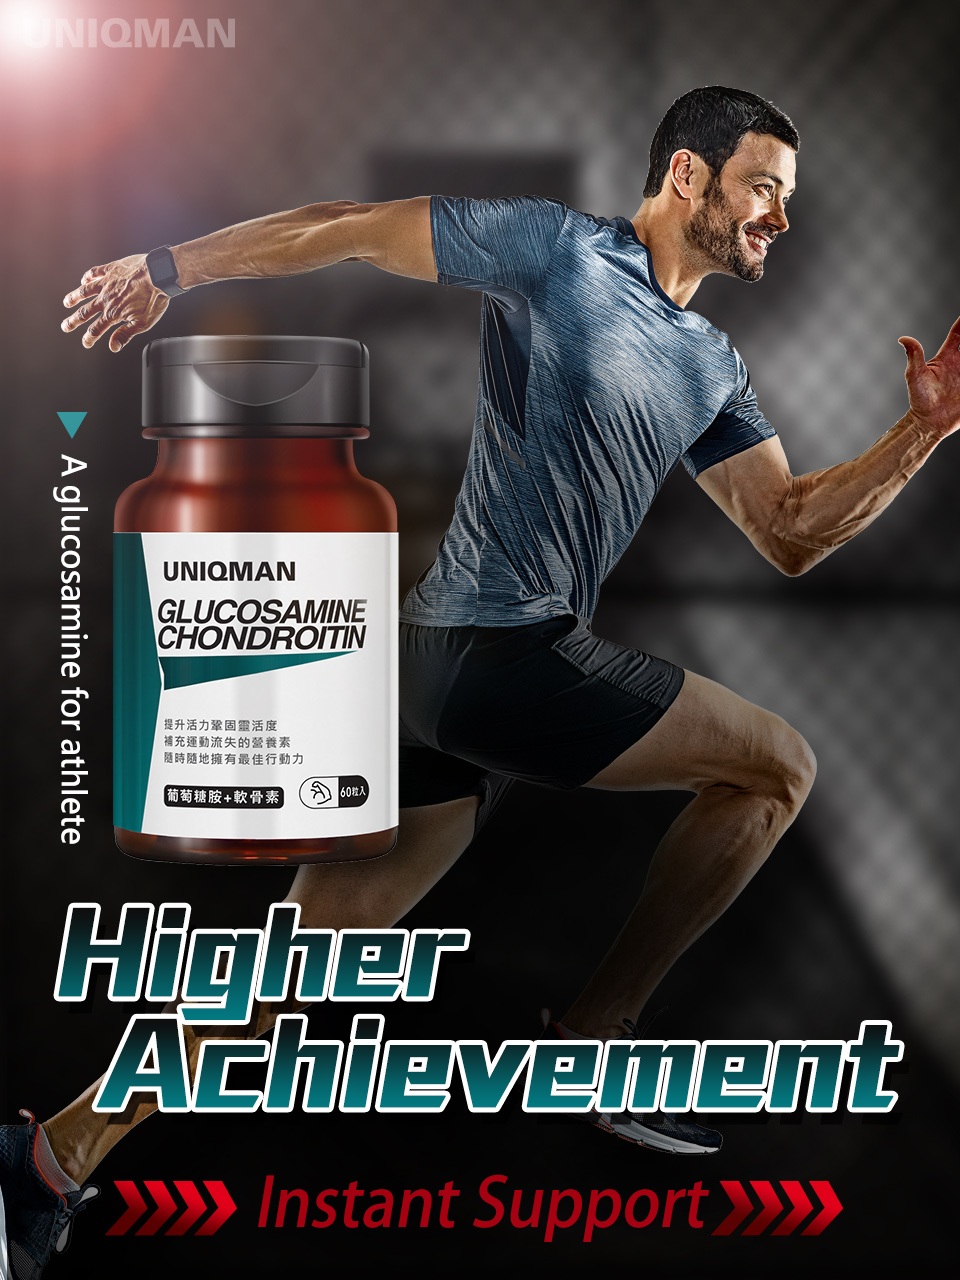 UNIQMAN Glucosamine + Chondroitin gives you a doubled joint nourishment